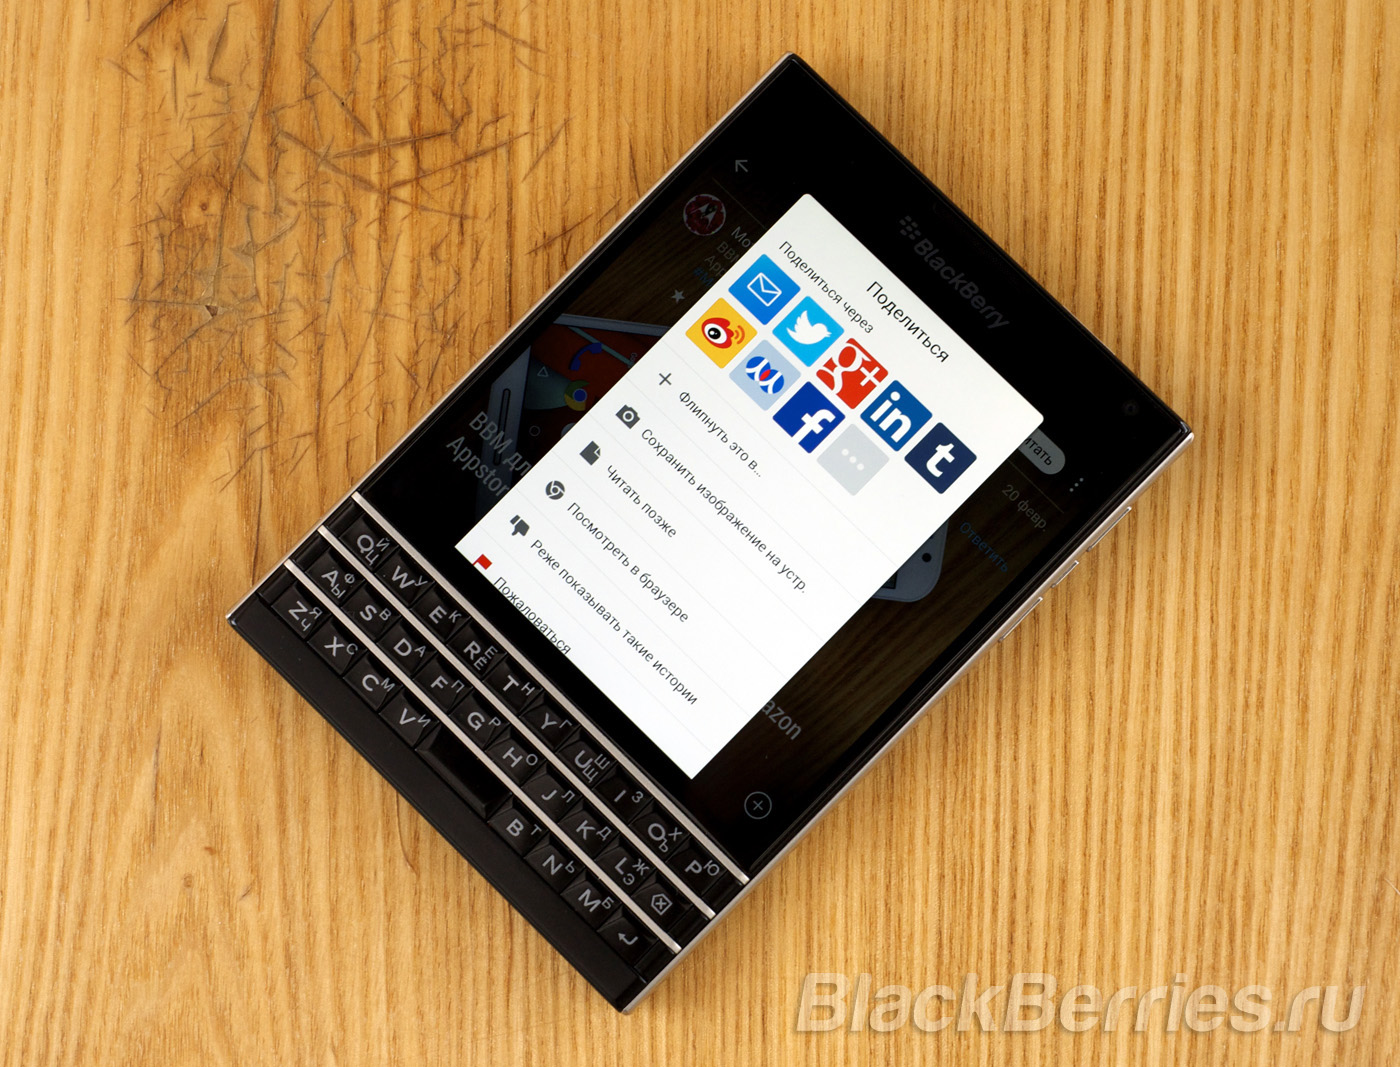 BlackBerry-Passport-Flipboard-10